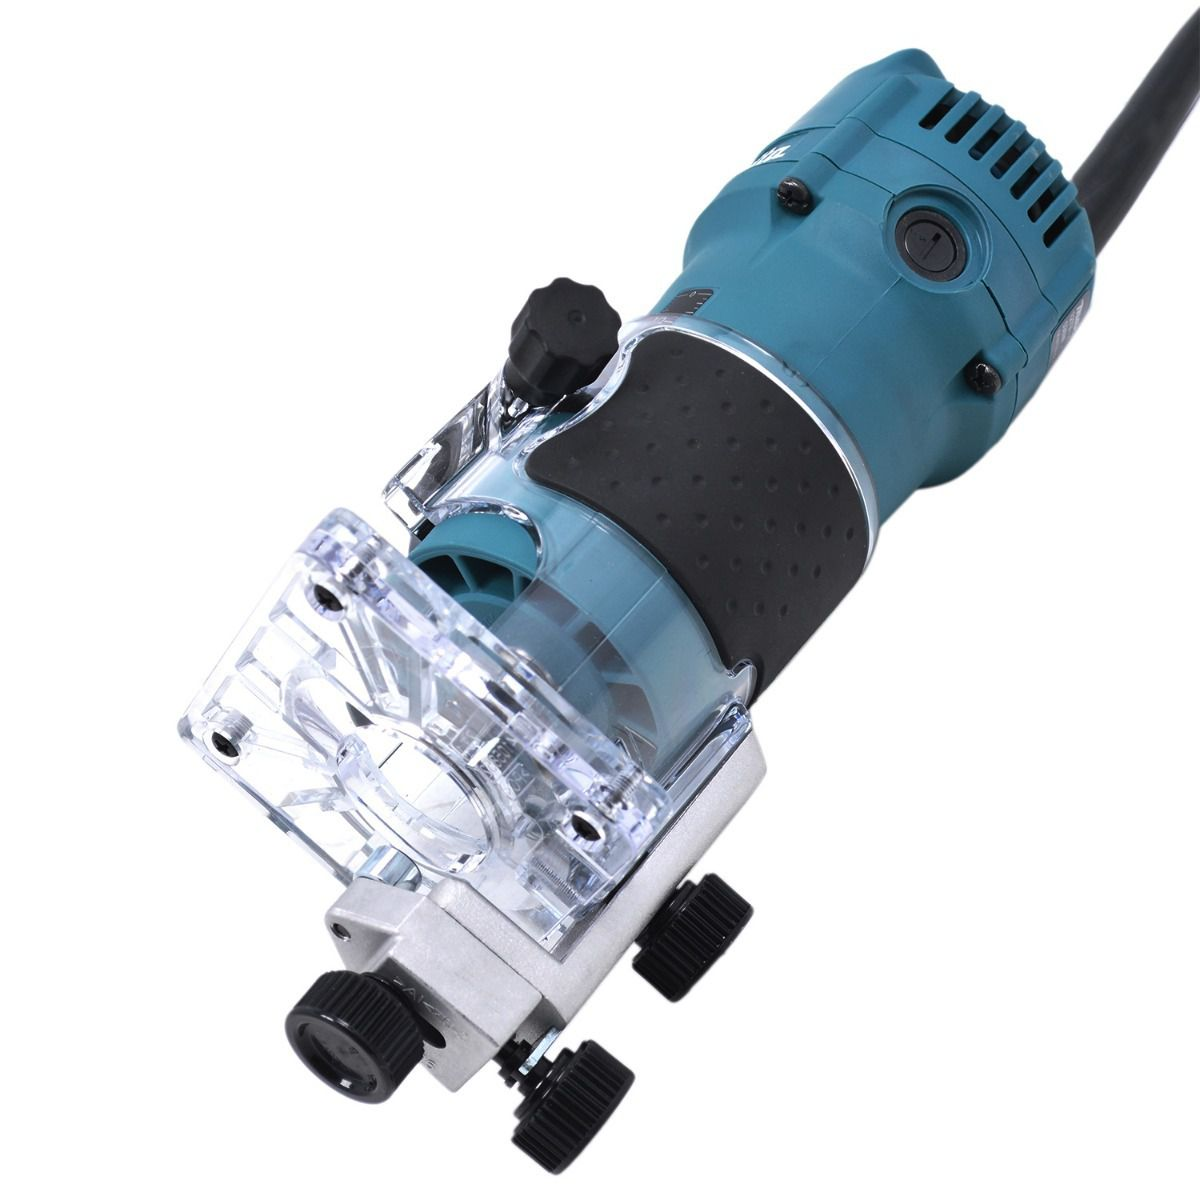 Tupia Makita 6mm 530w 3709 220V